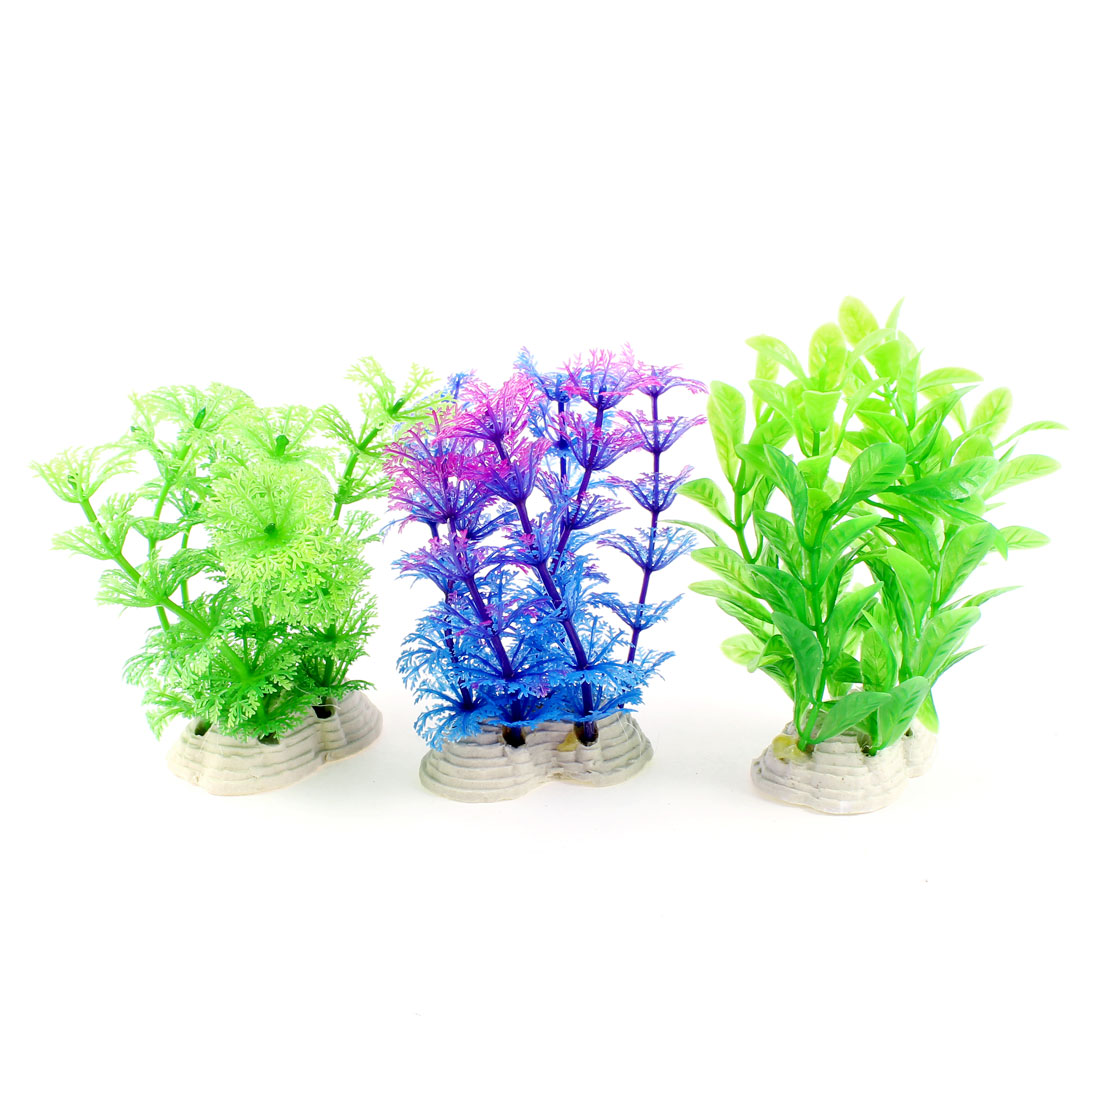 Fish Tank Indigo Blue Green Plastic Leaf Water Grass Plants Ornament 3 Pcs